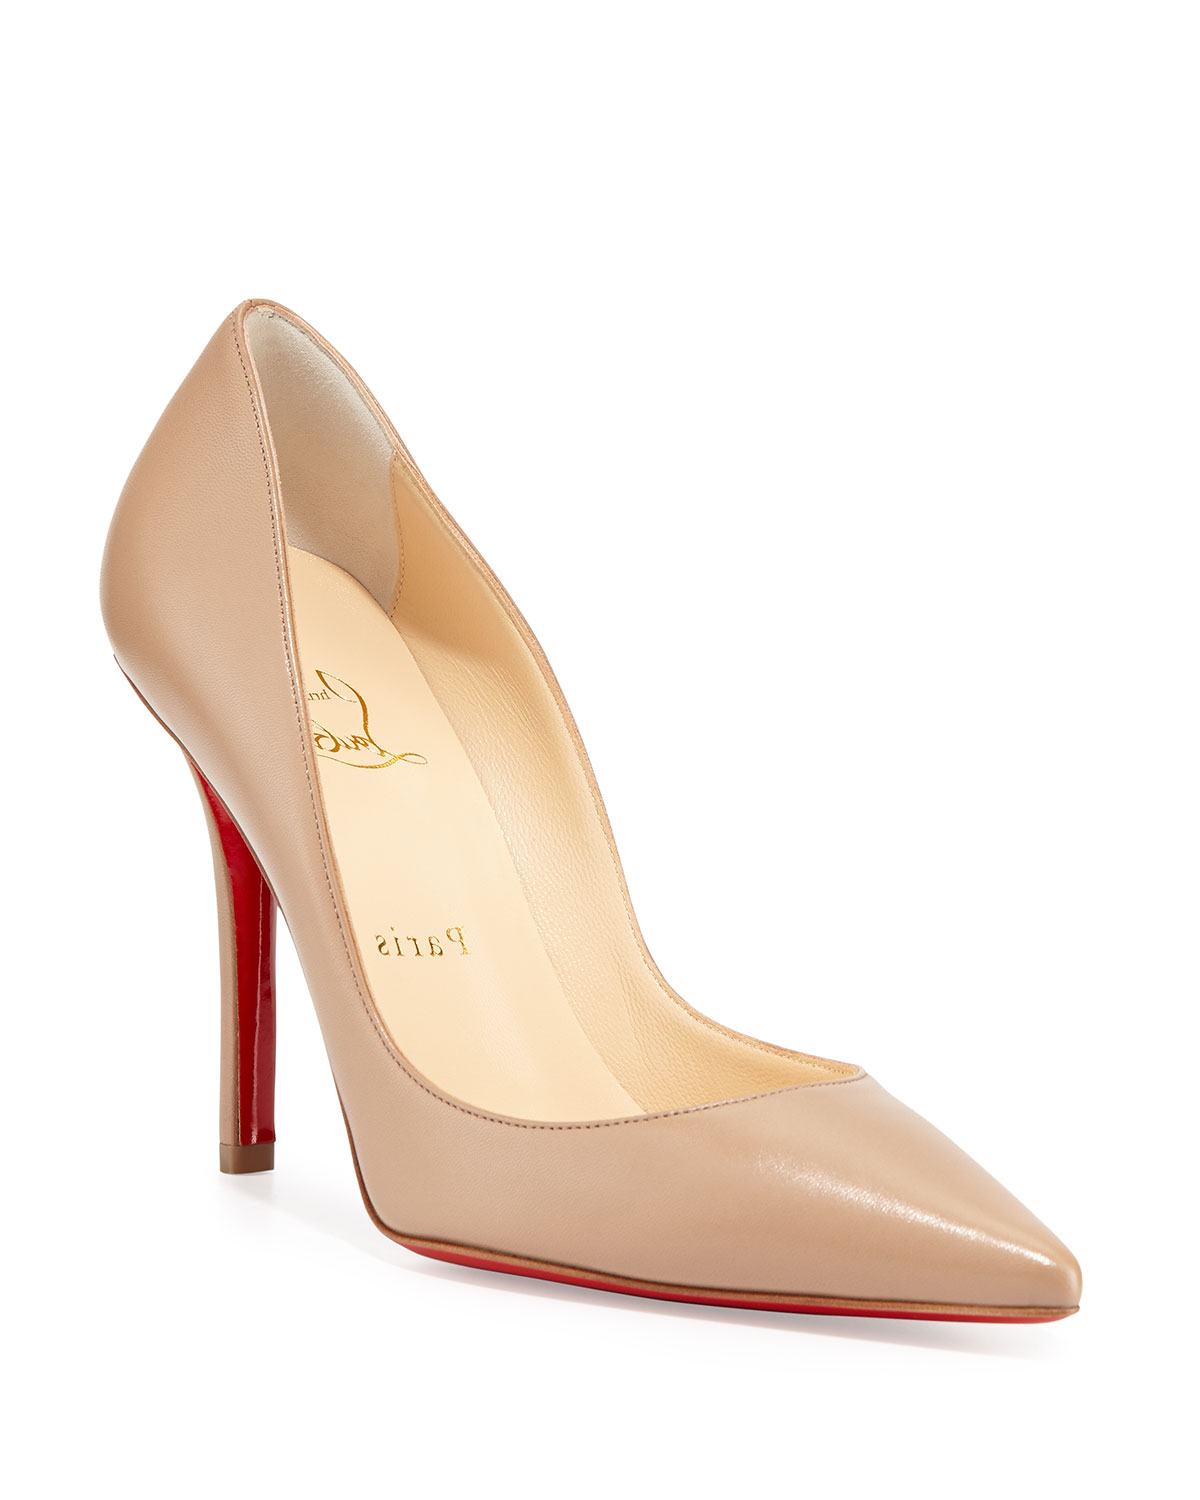 Christian Louboutin Apostrophy Pointed